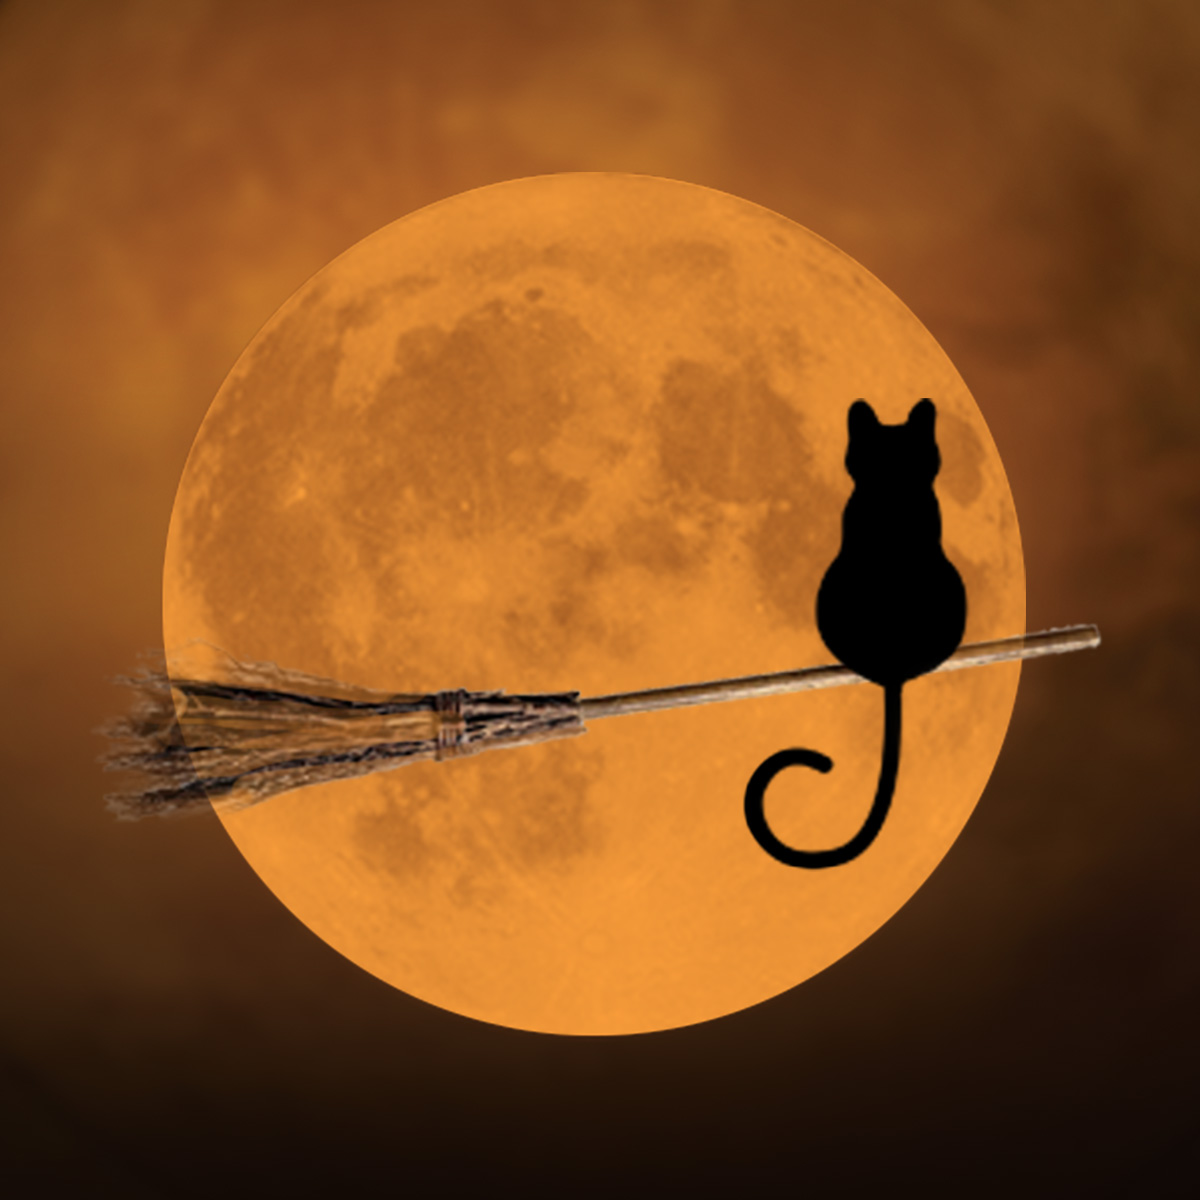 image of a cat sat on a broomstick watching the moon